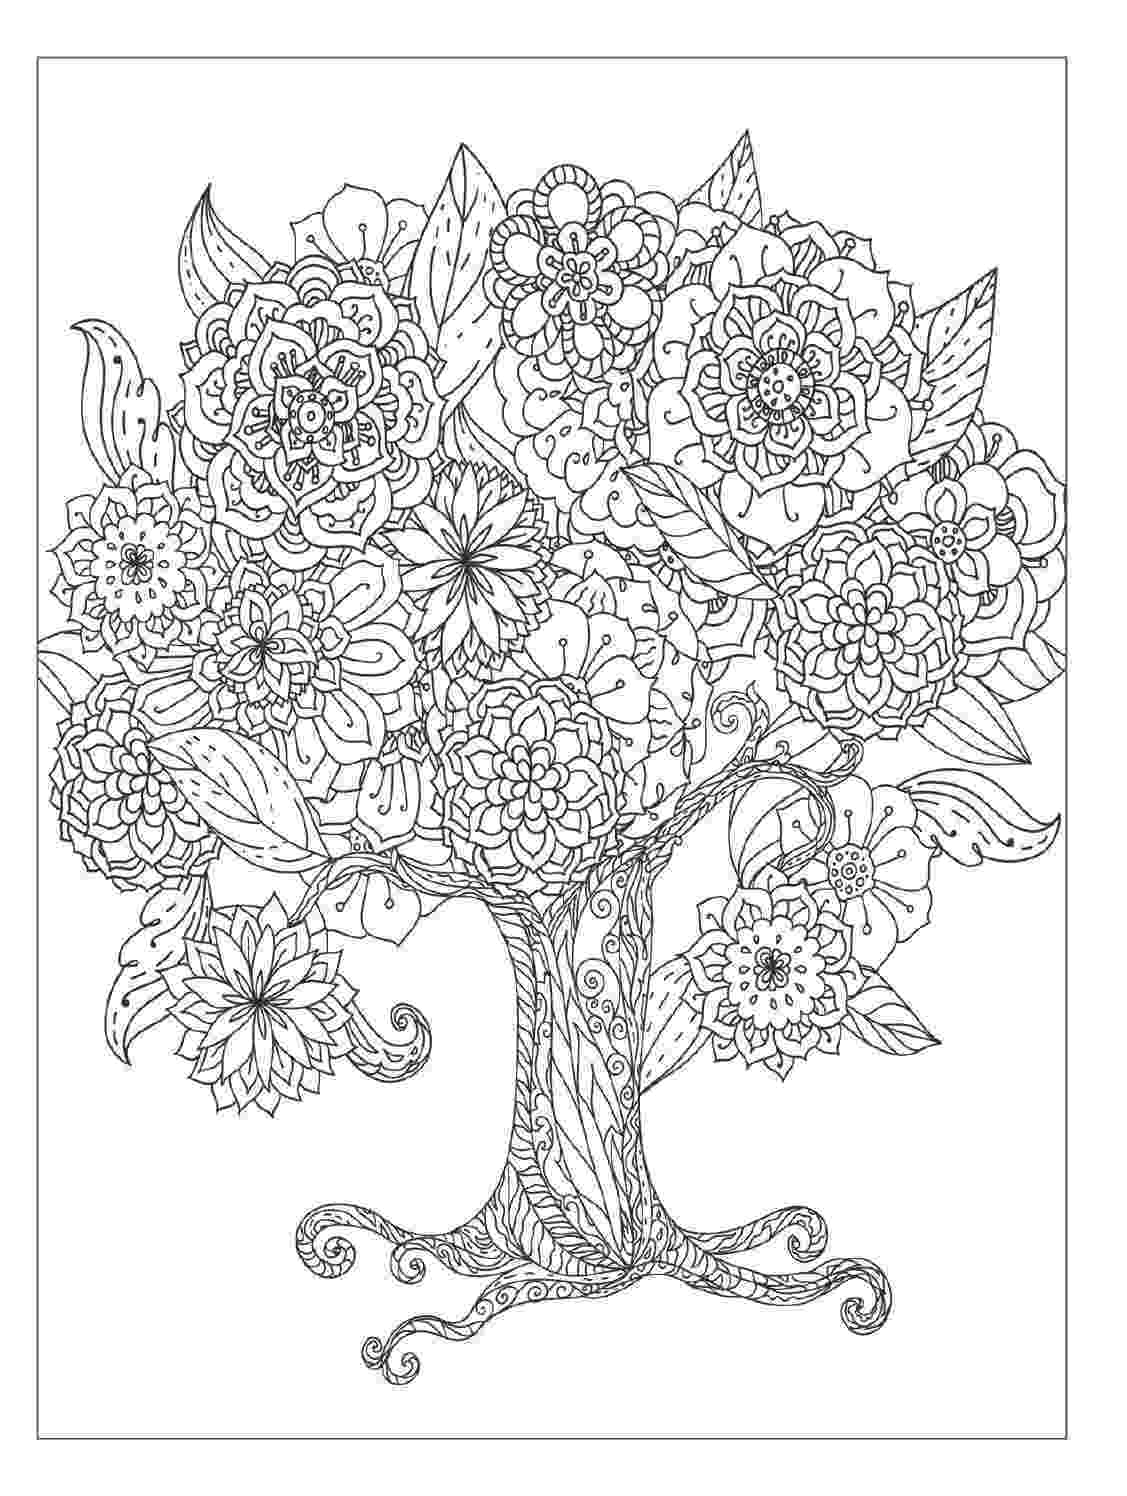 colouring pages of beautiful flowers a basket of flowers full of beautiful flowers coloring pages colouring flowers beautiful of